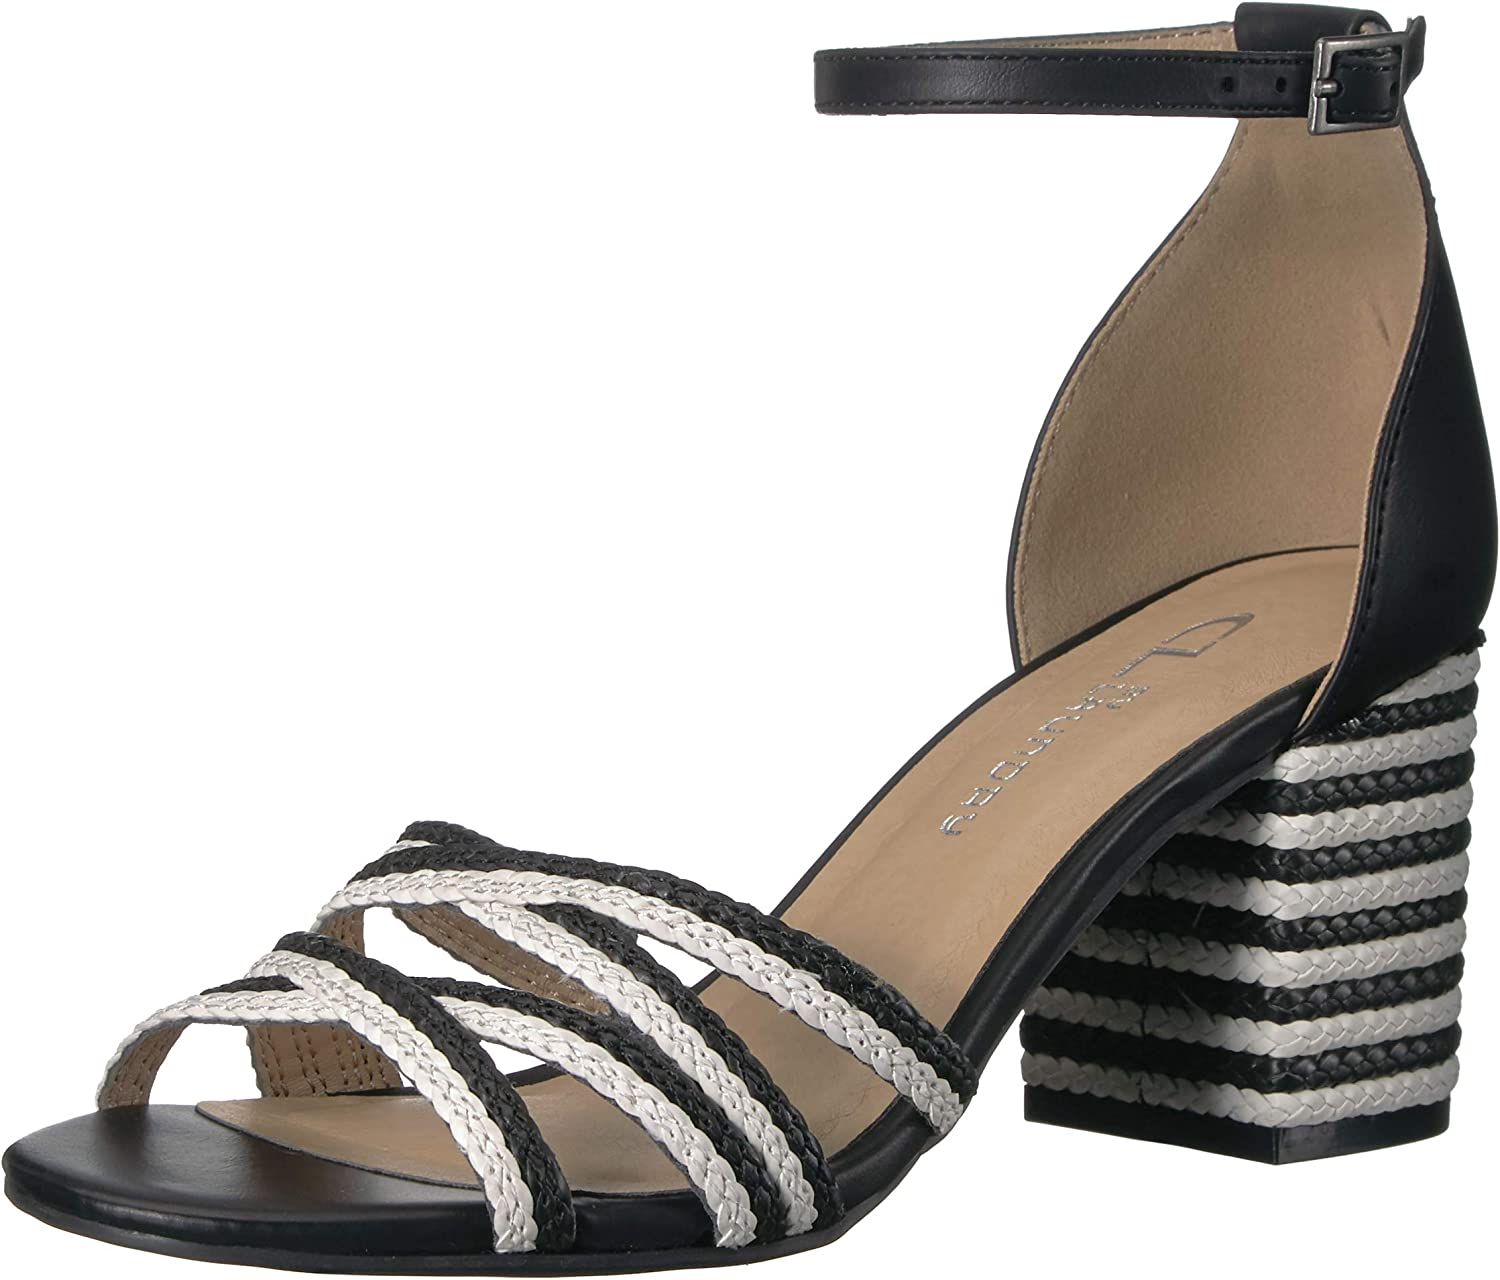 CL by Chinese Laundry Women's Jumpoff Heeled Sandal